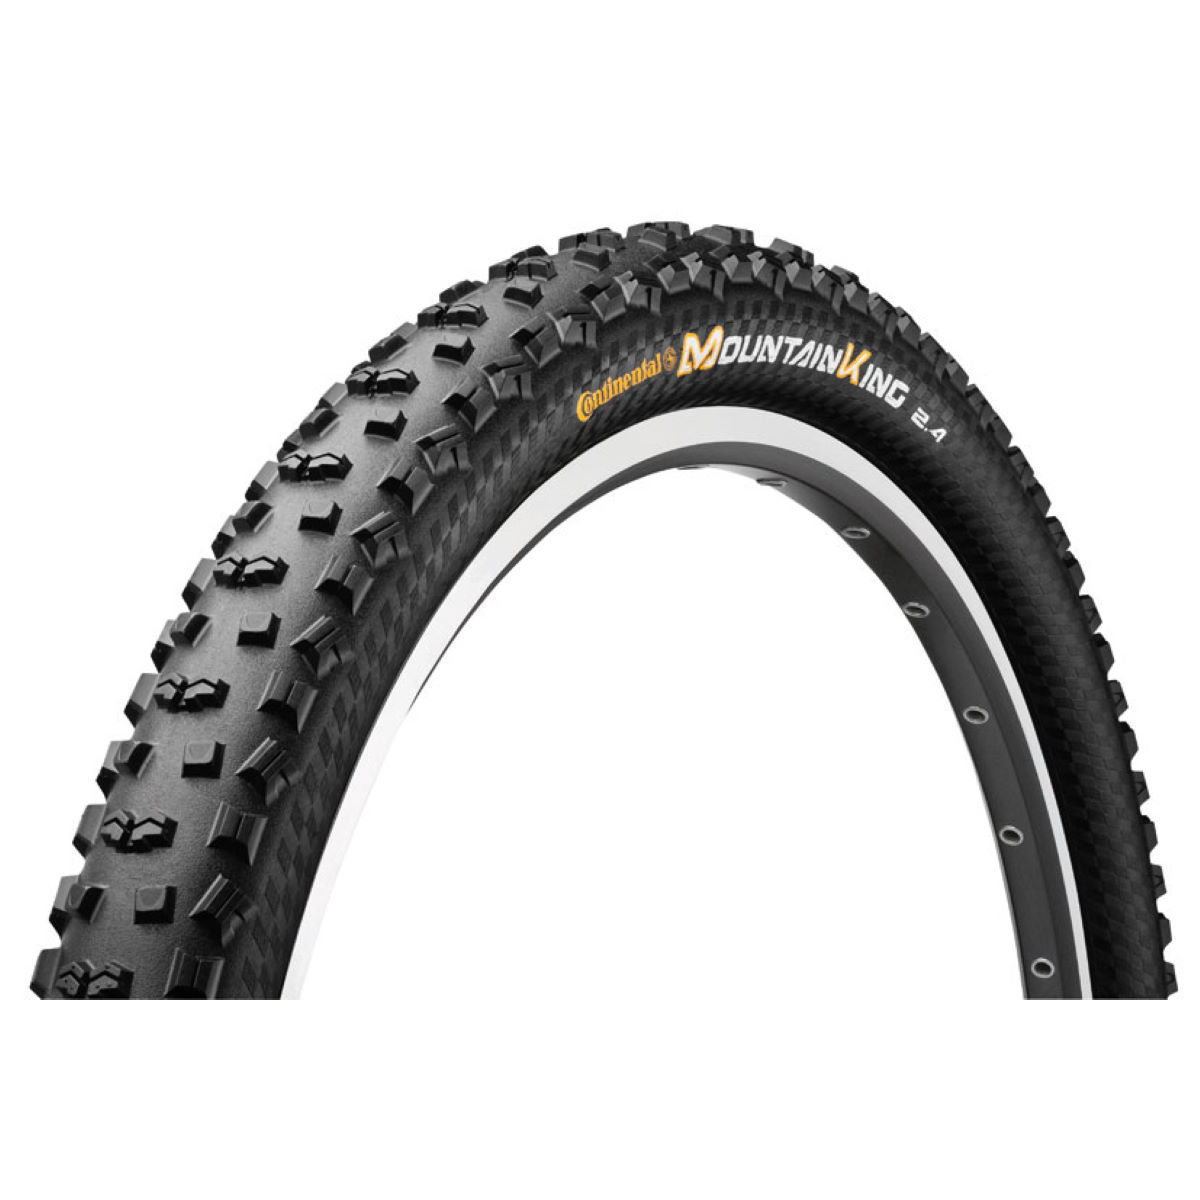 Pneu VTT Continental Mountain King II ProTection (souple) - 2.4' 26'